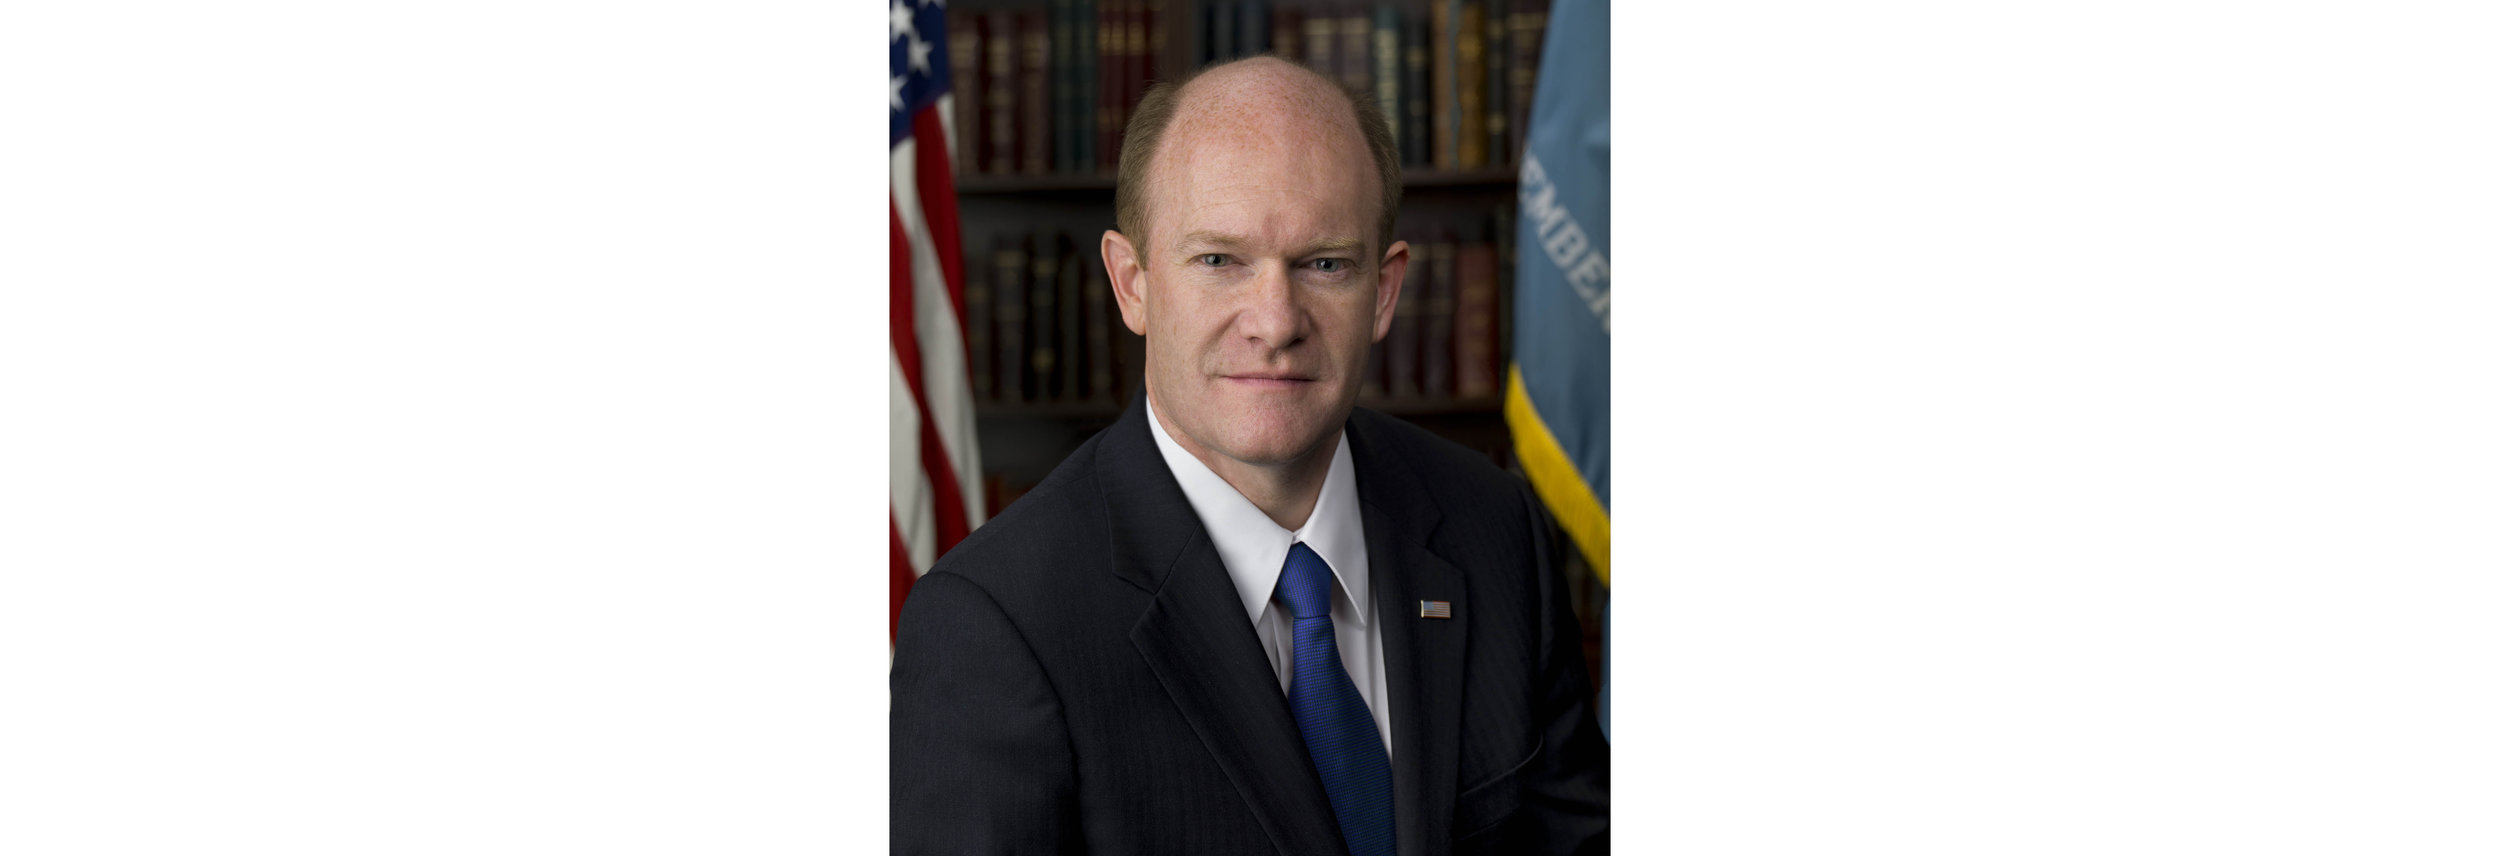 chris coons_site.jpg